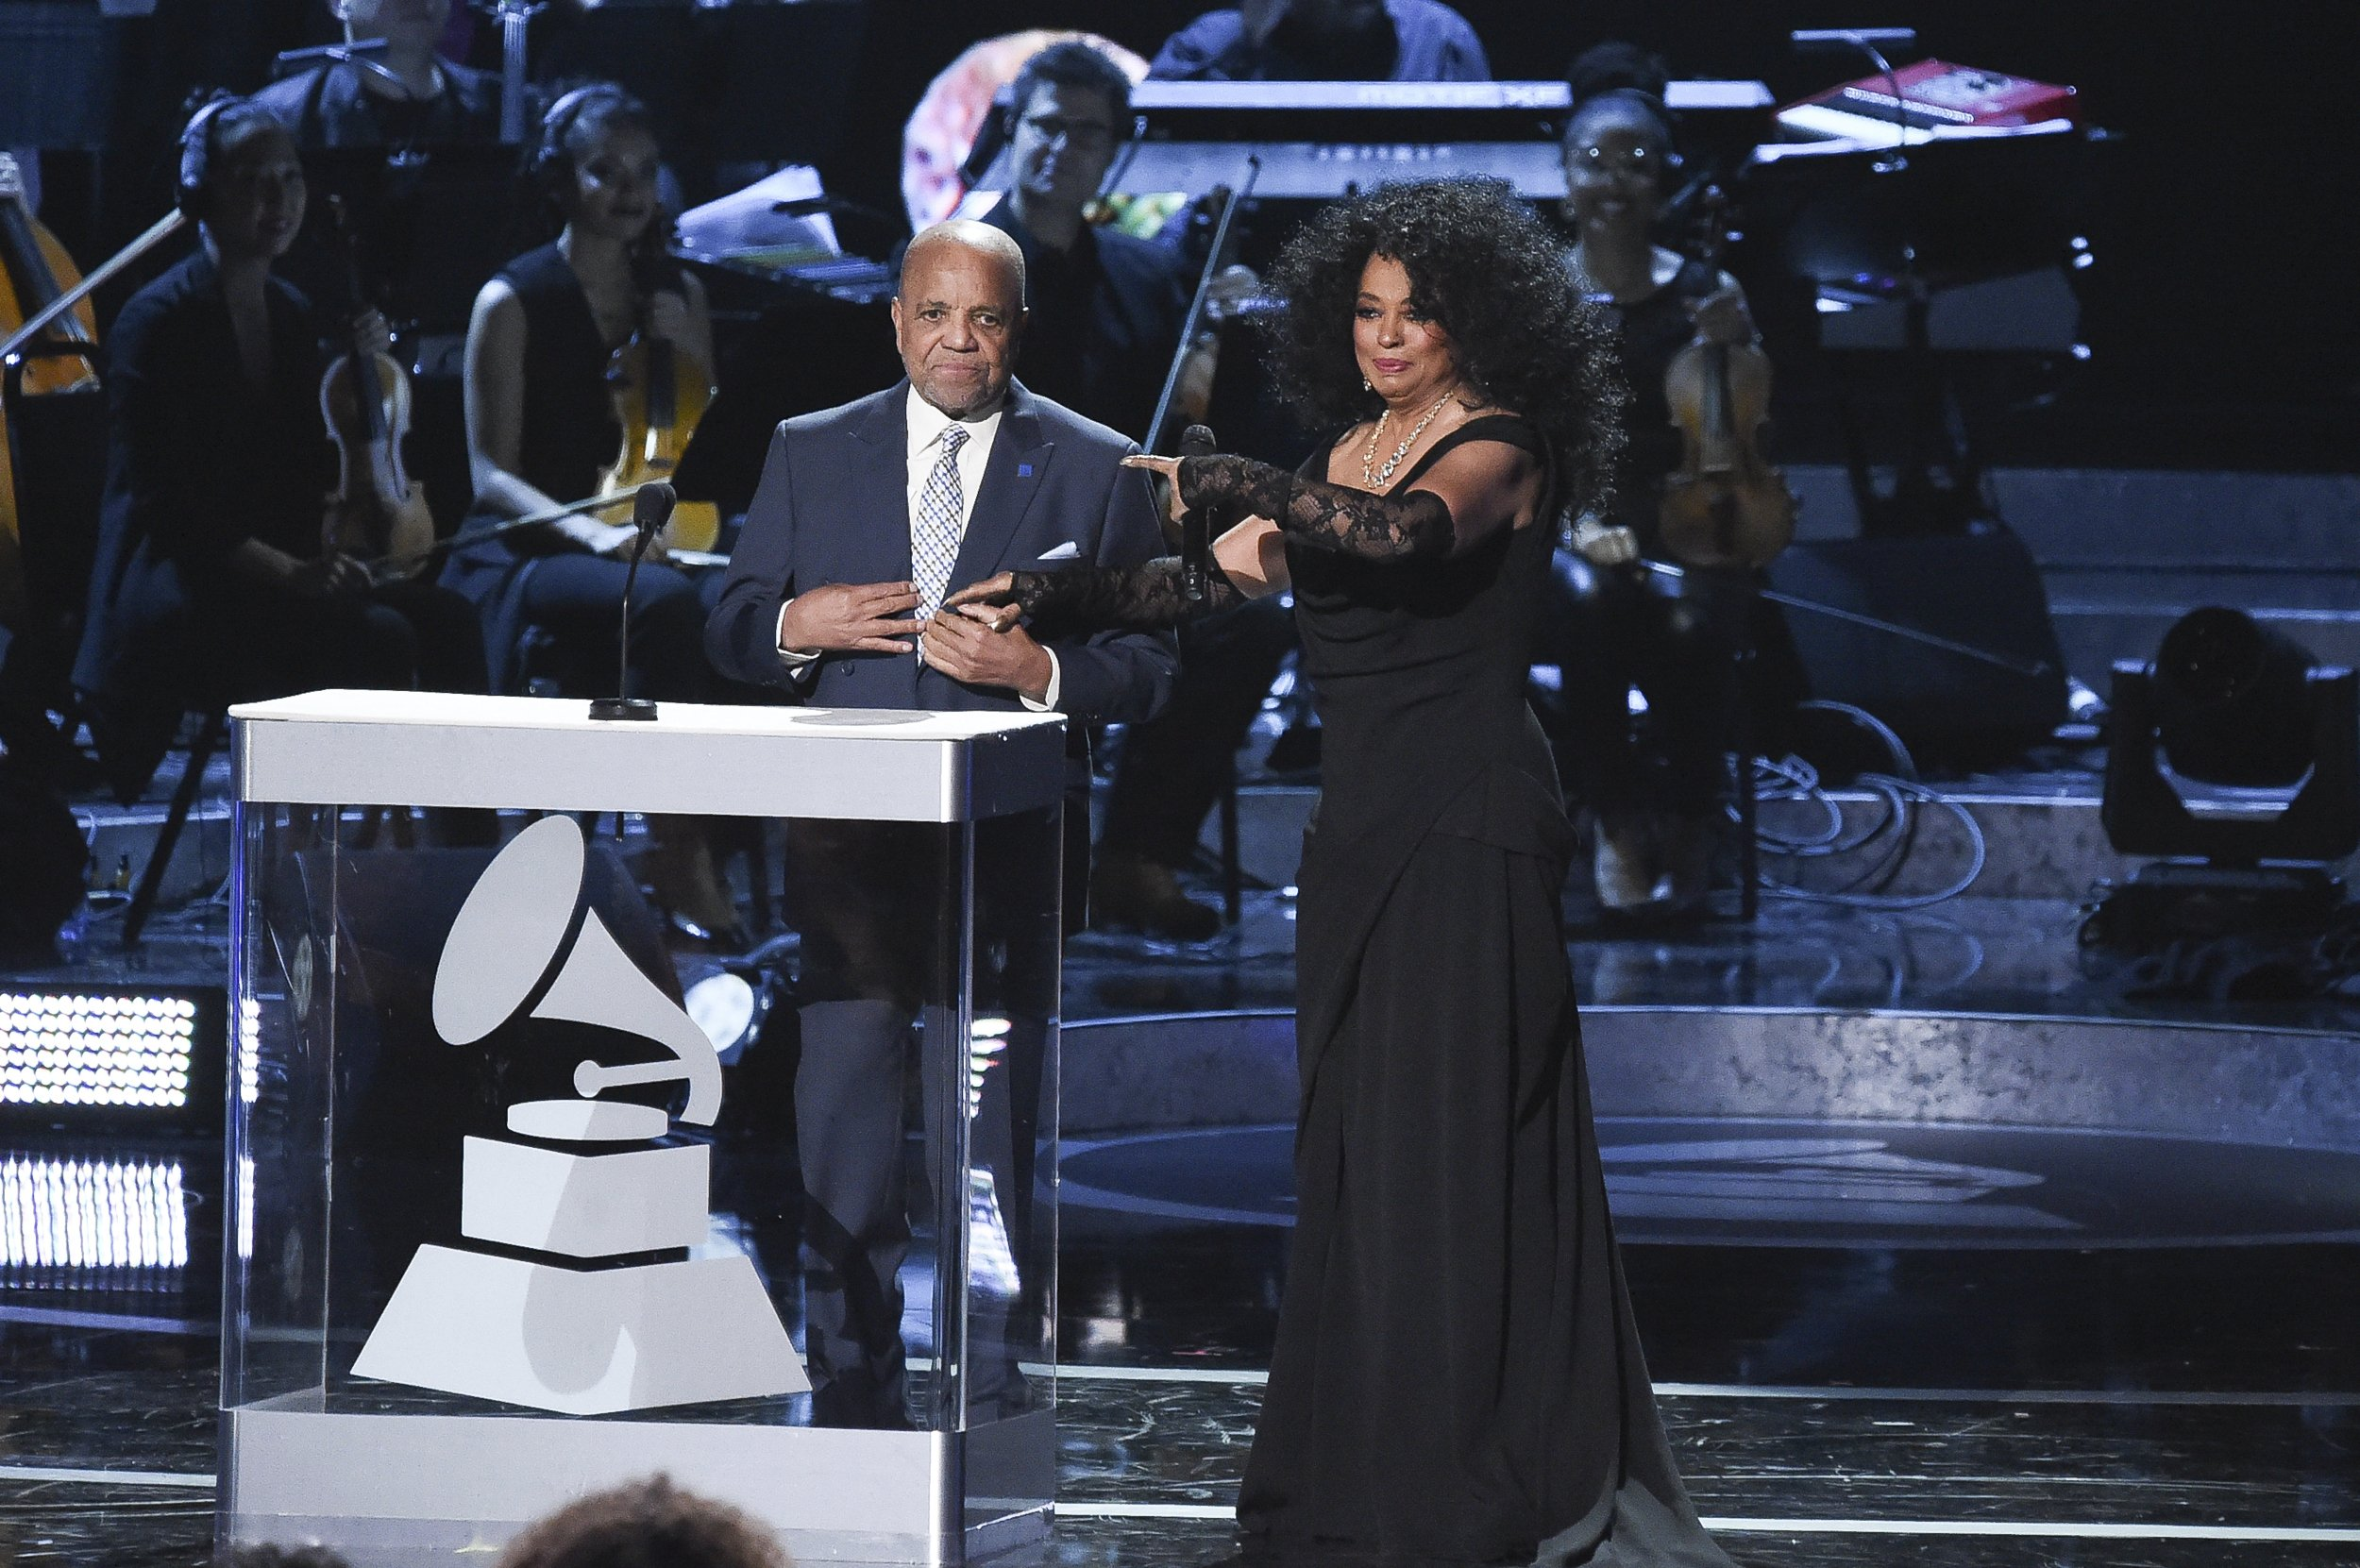 """Image result for Motown Records founder Berry Gordy looked out at the audience at a 60th anniversary tribute to his groundbreaking record label and saw his dream of making music for """"all people"""" in the world fulfilled.  Gordy told the packed Microsoft Theater at the """"Motown 60: A Grammy Celebration"""" that he wanted his label to bring people together from all walks of life through """"a legacy of love."""" The pre-taped concert, hosted by Smokey Robinson and Cedric the Entertainer, with an all-star lineup including Stevie Wonder, John Legend, Diana Ross, Meghan Trainor and Tori Kelly, airs Sunday on CBS.   """"My dream came true,"""" said Gordy, who started the African American label in 1959, building a roster that included superstar artists such as Marvin Gaye, Michael Jackson, The Temptations, The Supremes and Diana Ross.  """"I want to thank all of you fans, and your parents, and their grandparents. All around the world. I could say their great grandparents, but that would make me older than I want to be.""""  When Gordy launched Motown, he gave black musicians the platform to showcase their talents at a time when they struggled to get their records played on mainstream radio stations. His label introduced and helped launch the careers some of the biggest selling music stars from Gaye to Lionel Richie.  His label paved a way for the Motown Museum to be built in Detroit. It was the first headquarters of Gordy's music empire where Wonder, The Supremes, the Miracles and other performers recorded hits before Motown moved to California in 1972.  """"We didn't even realize the impact of Motown,"""" said Gordy, who started the label with an $800 loan from his family. """"In those early days, the unsung heroes had the courage to follow me down a road that didn't even exist.""""  Some of Motown's greatest hits were put on display during the concert, which was taped in February.  Ciara danced onstage sporting a Rick James-like braided wig with beads during her rendition of """"Give It to Me Baby."""" Legend cr"""